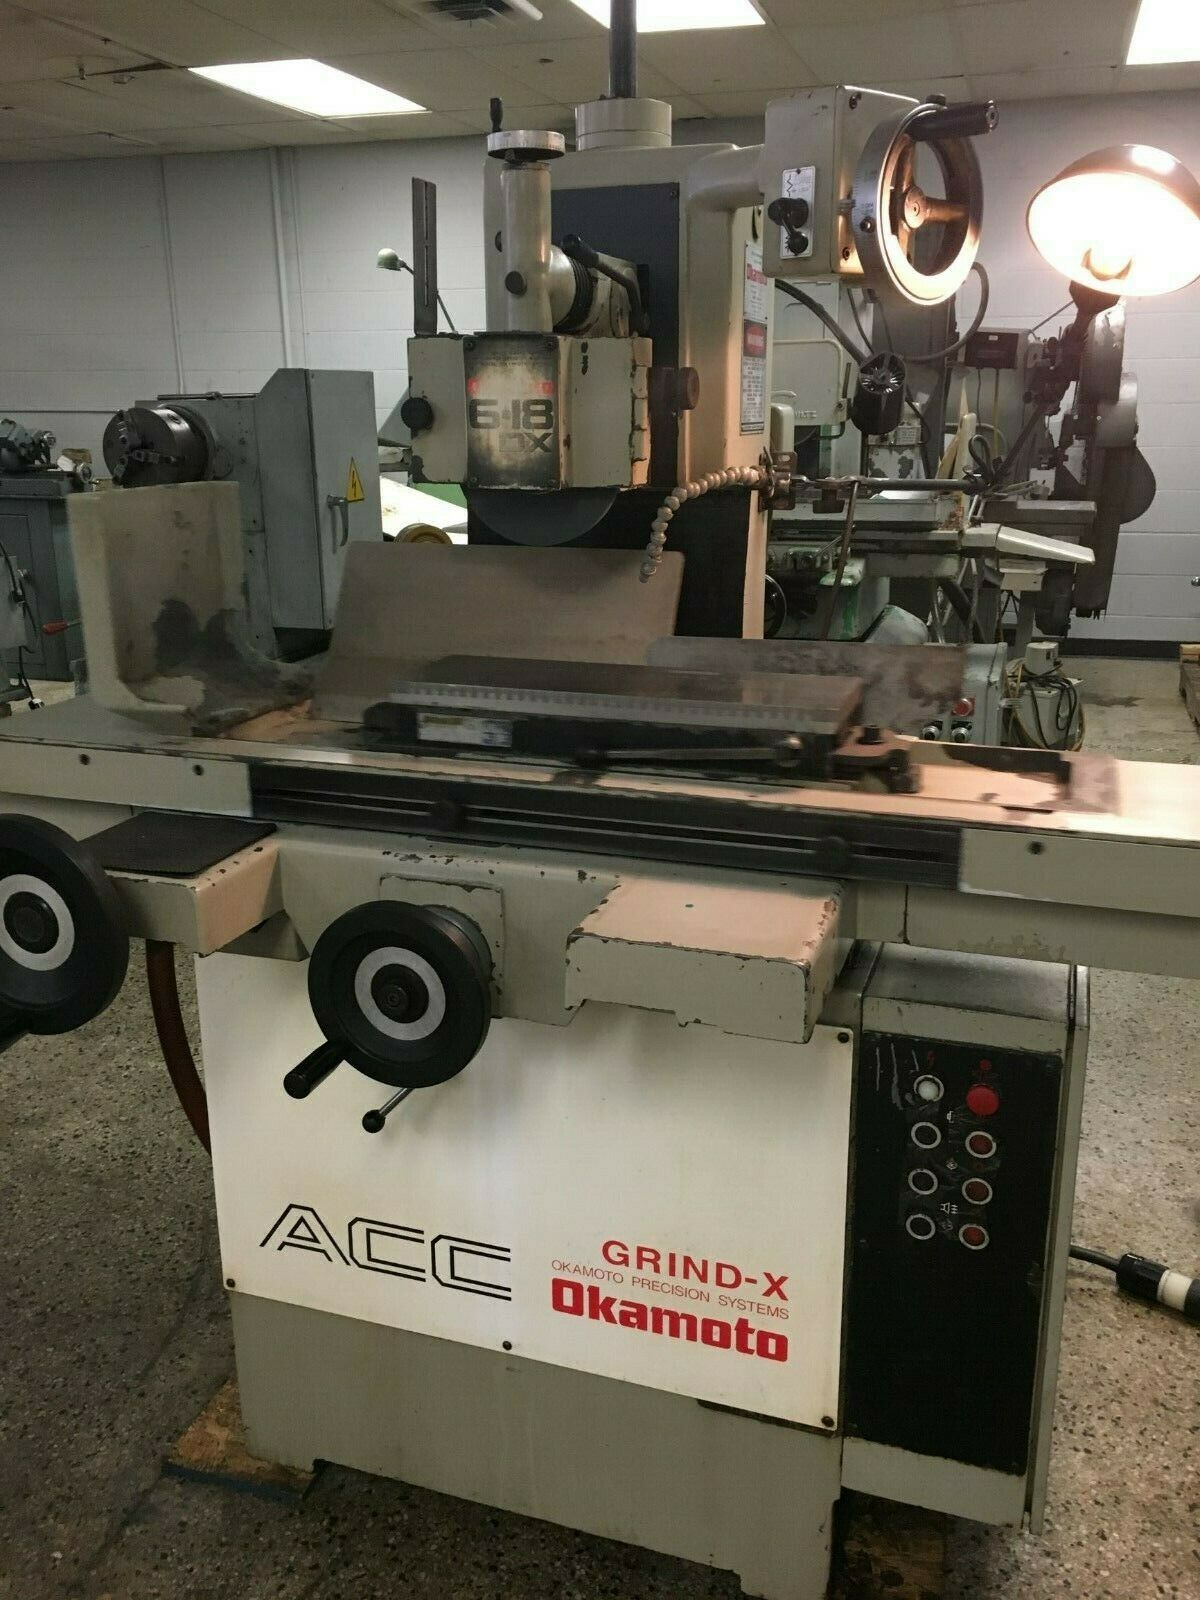 Okamoto ACC-6.18DX1 Precision Hydraulic Surface Grinder, S/N 41028.